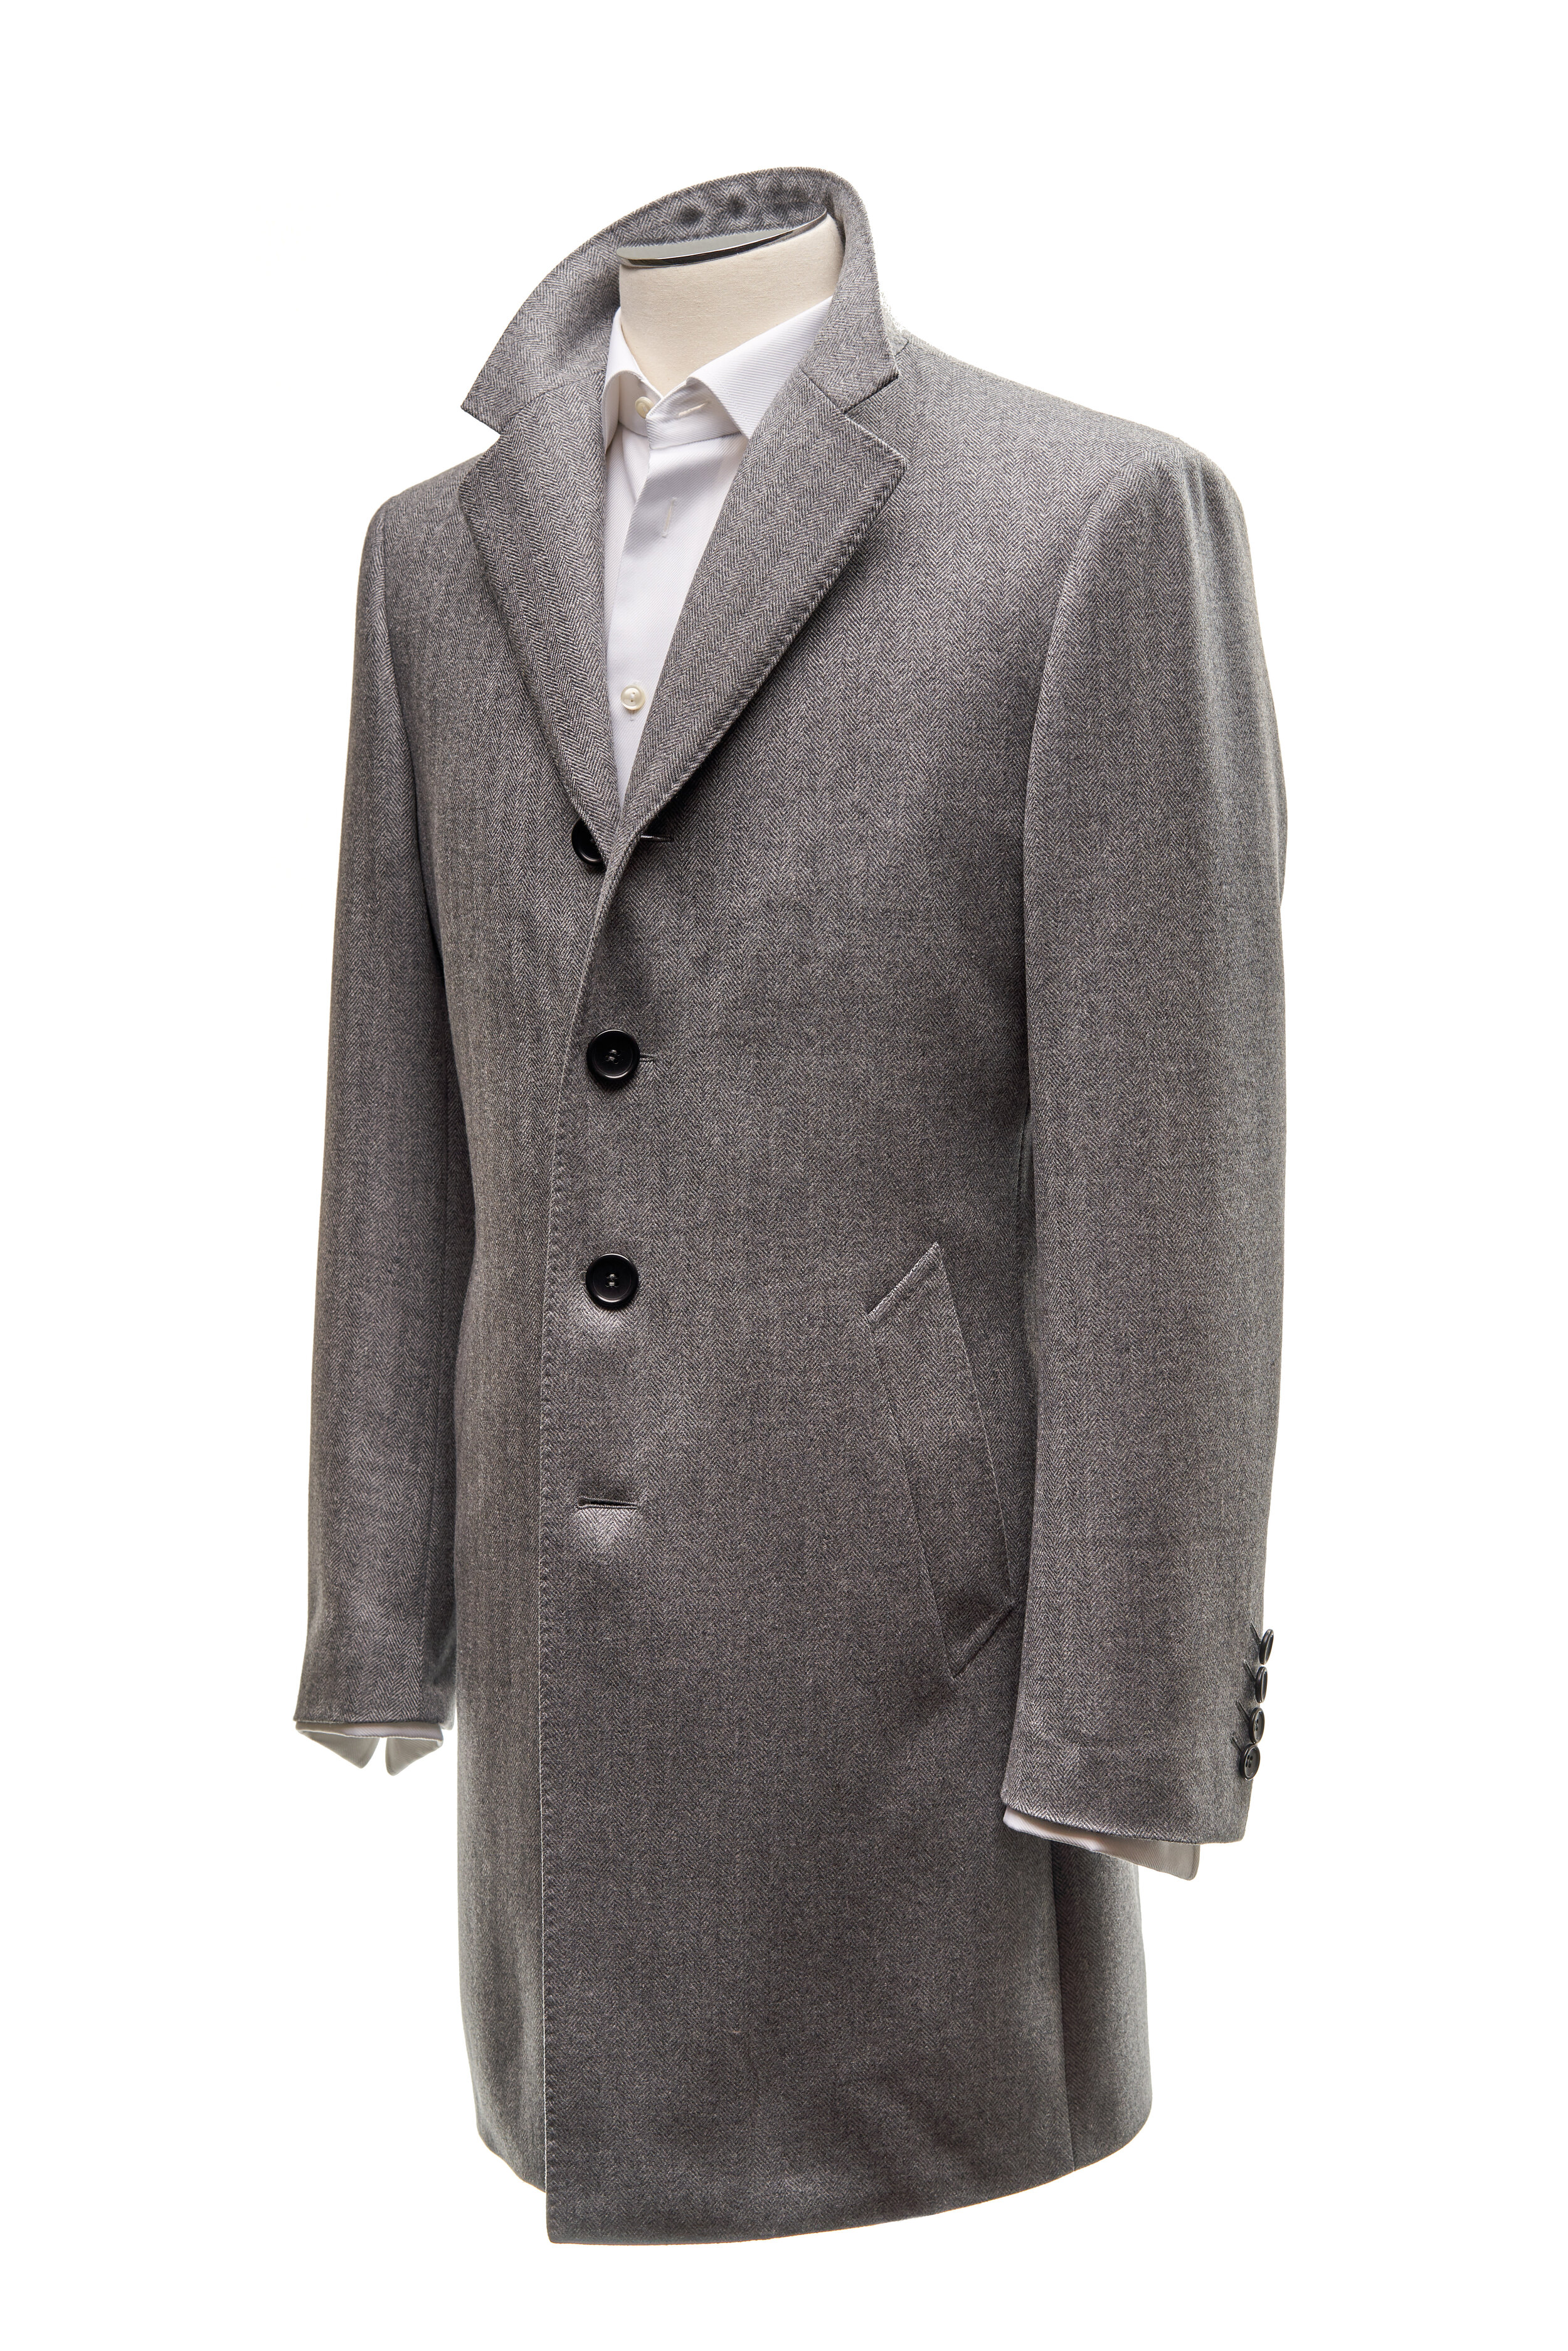 Herringbone Topcoat - Four button herringbone overcoat, with traditional high cut notch lapel. Slanted comfort welt pockets. Cloth composition 100% wool, 380g/m.